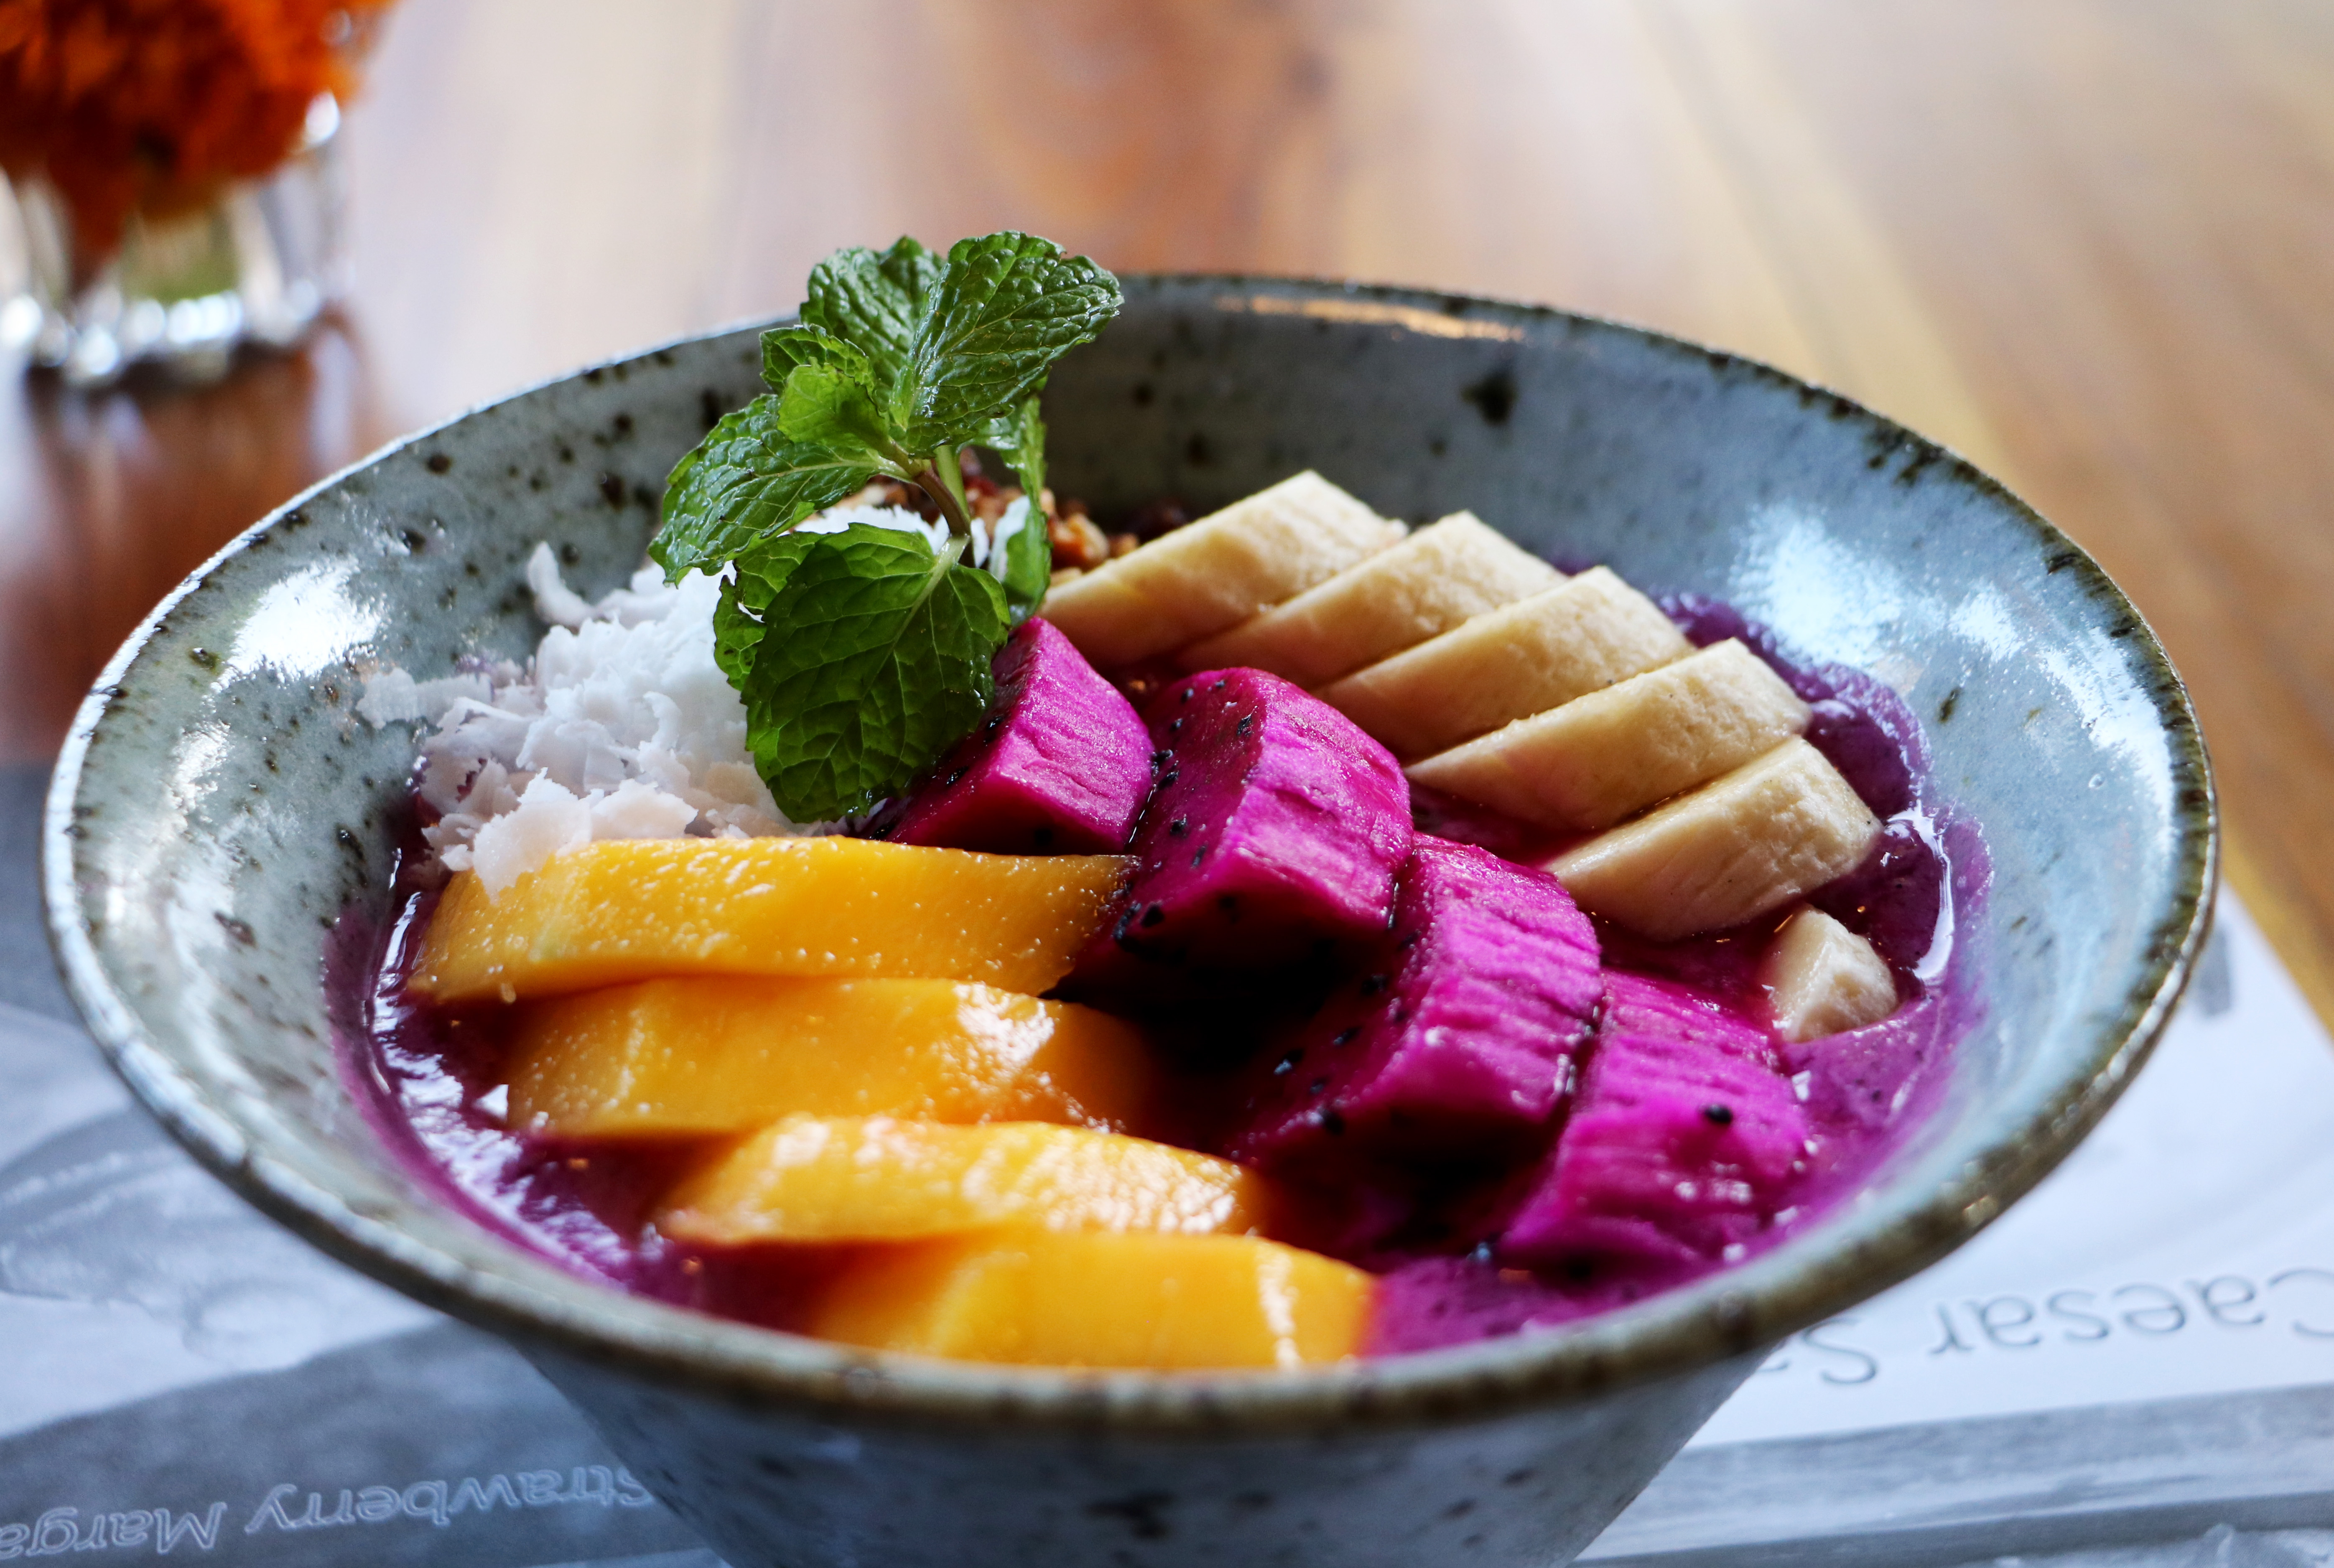 Natural food, bowl, Ubud, Bali